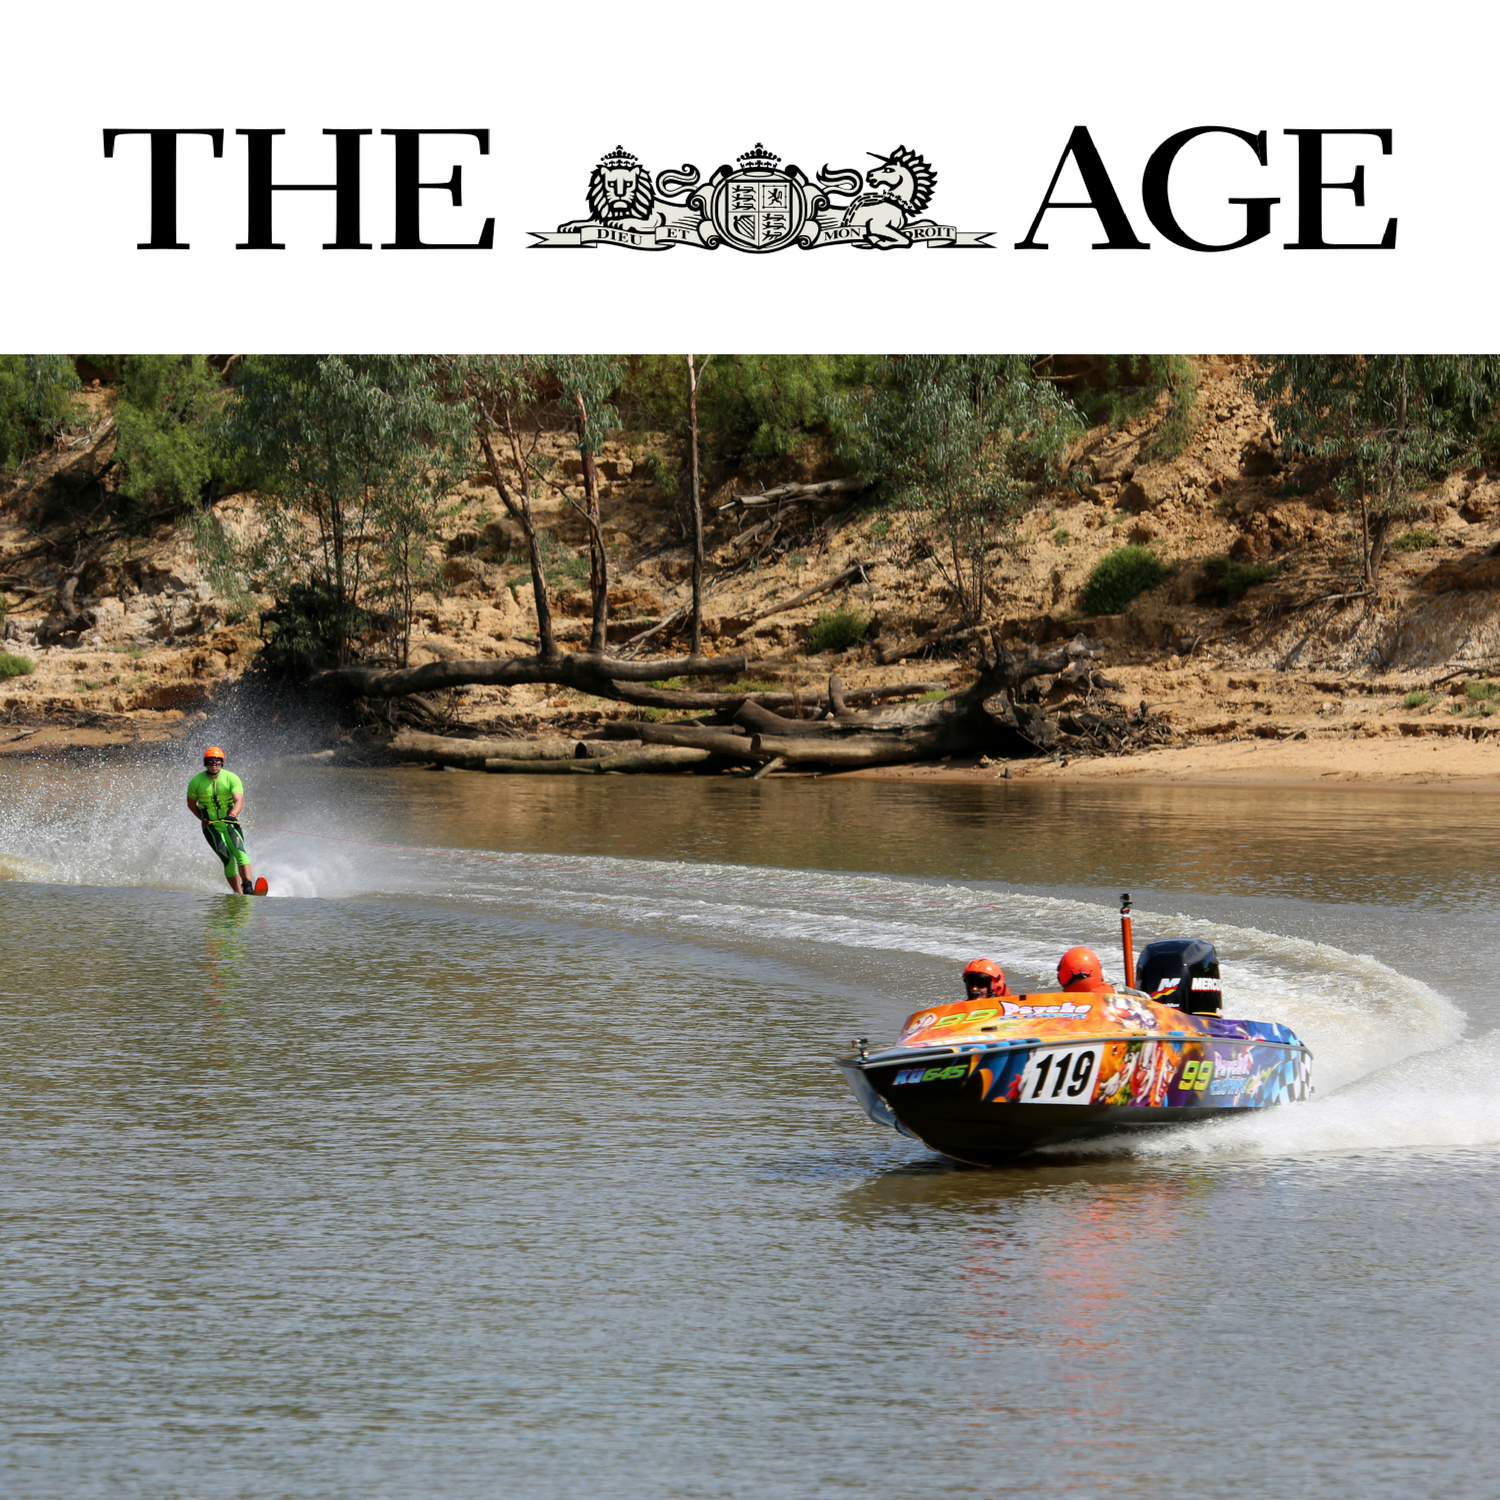 BLIND WATER SKIIER TO RE-WRITE SOUTHERN 80 HISTORY - BY TIM DOUTRE